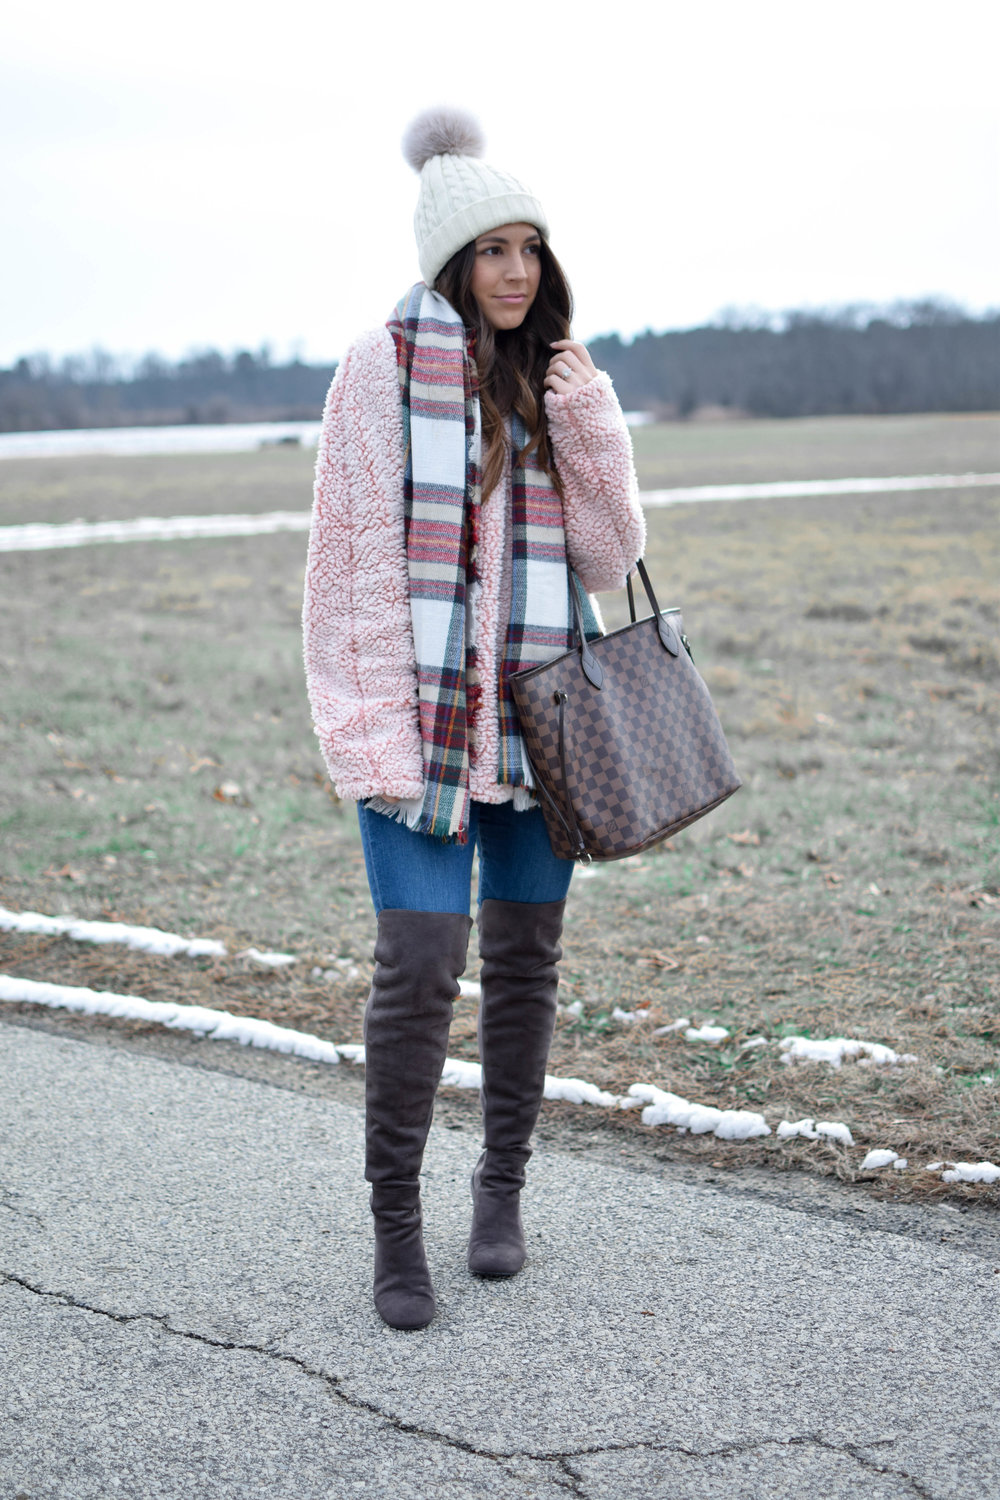 The Best of 2017 | Pine Barren Beauty | blush sherpa pullover, fleece pullover, winter outfit idea, winter outfit inspiration, over the knee boots, plaid scarf